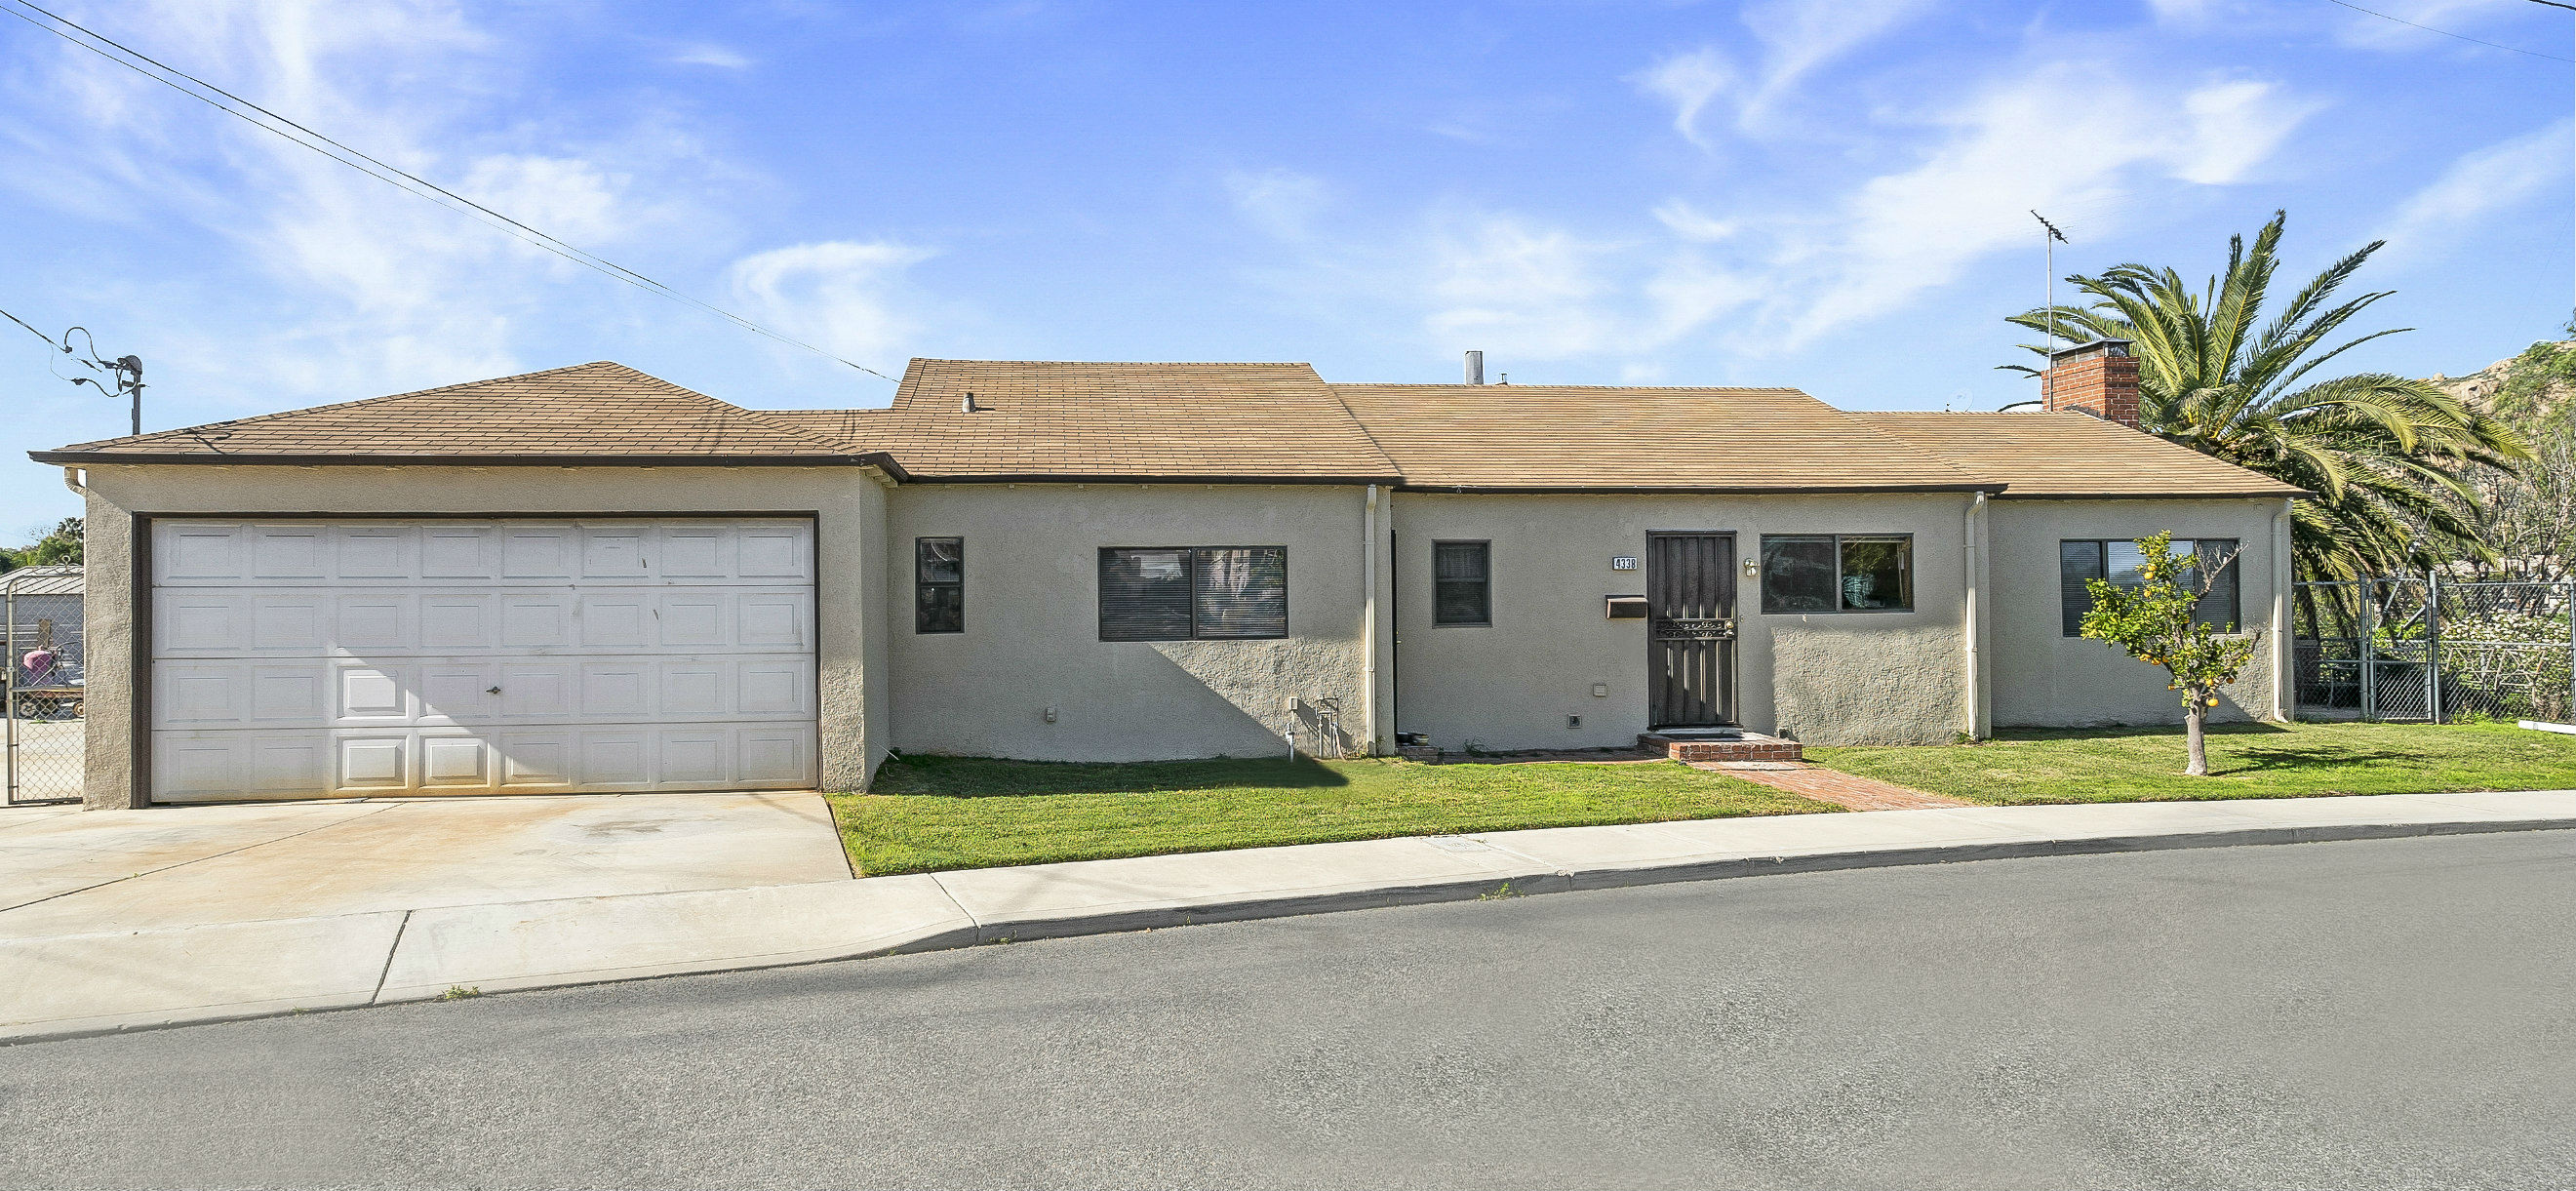 4338 Alta Vista Dr., Riverside CA 92506 listed by THE SISTER TEAM